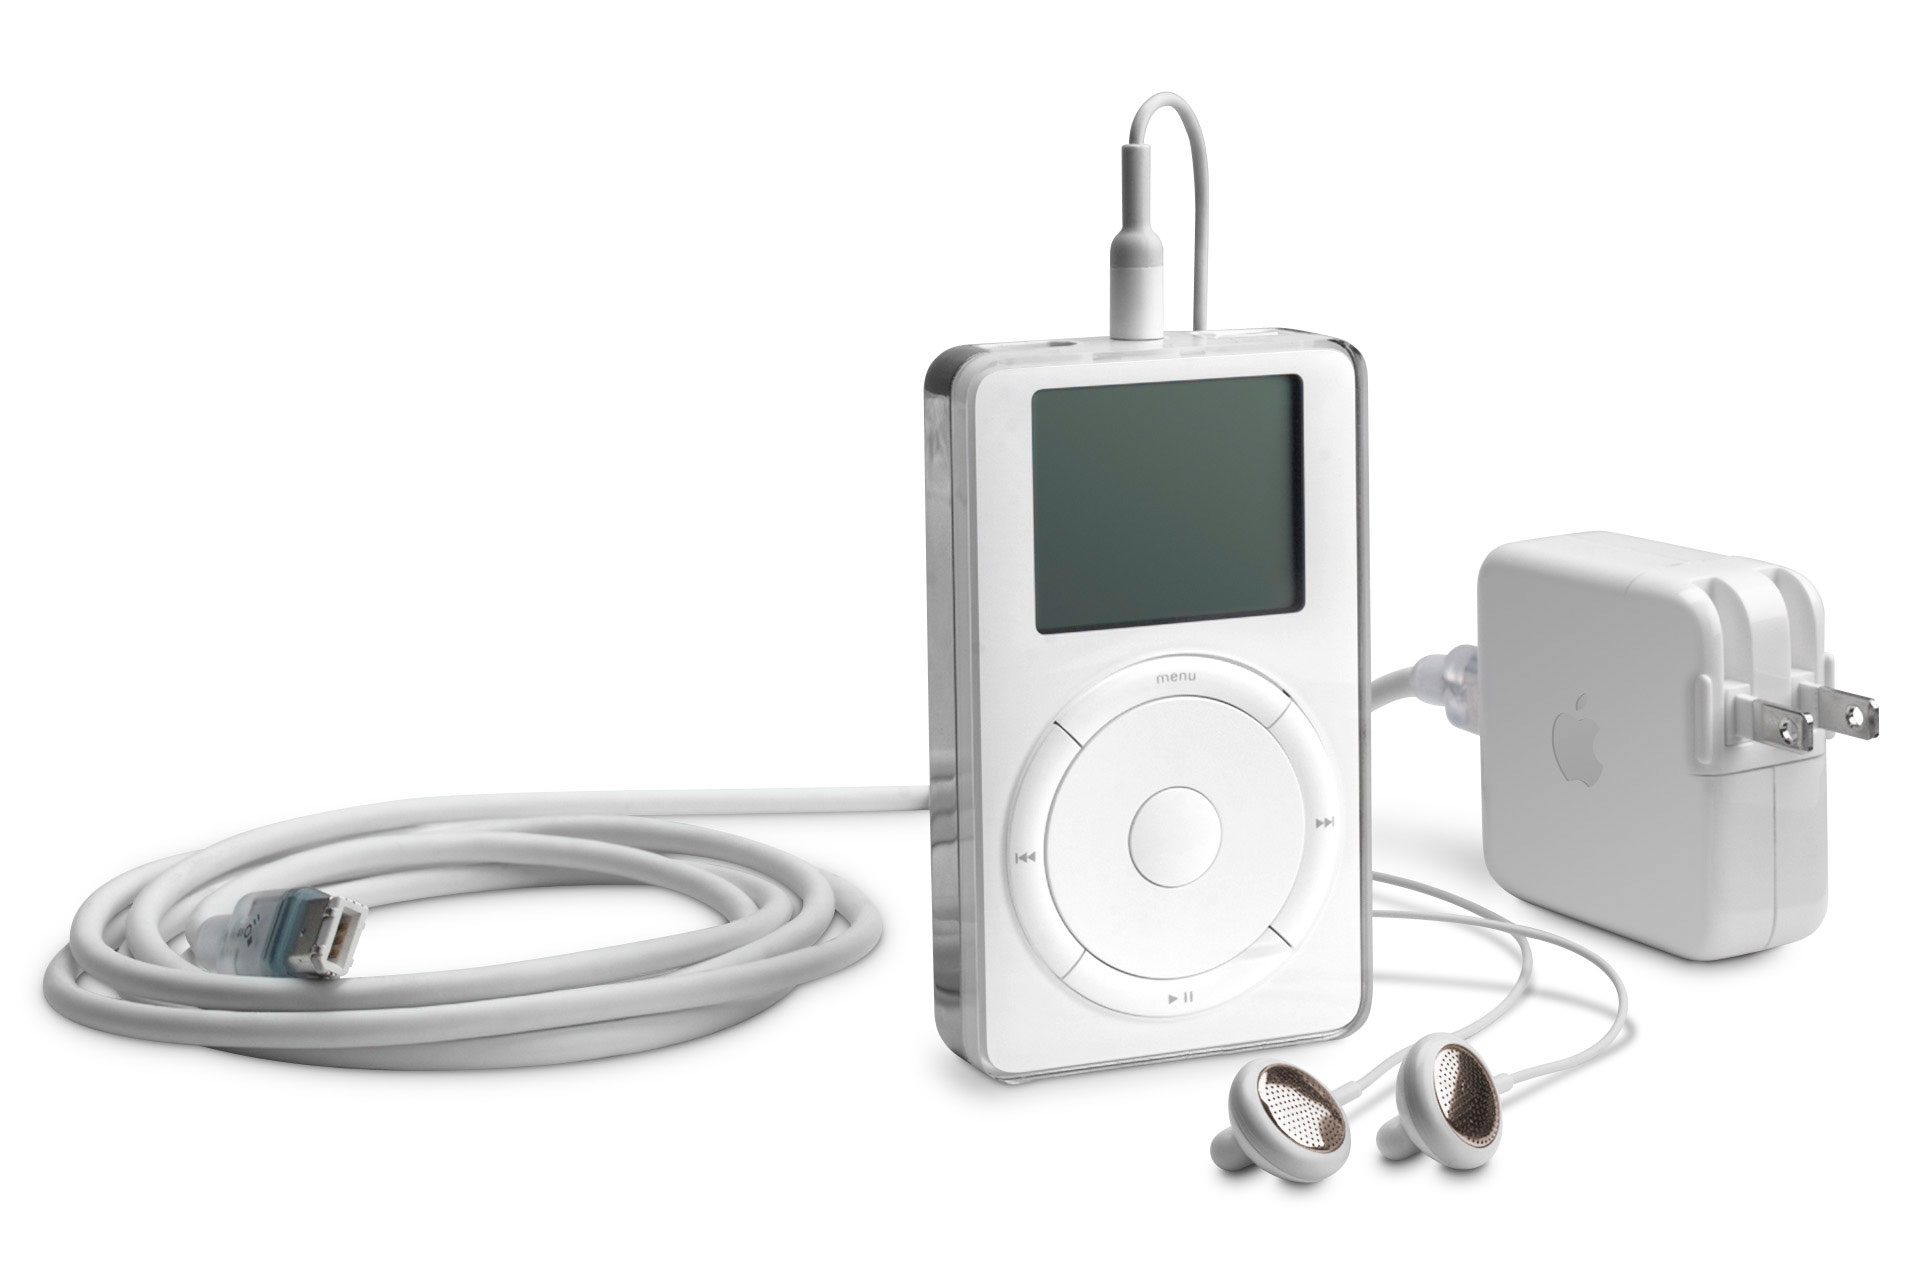 ipod-first-gen-5gb-accessories